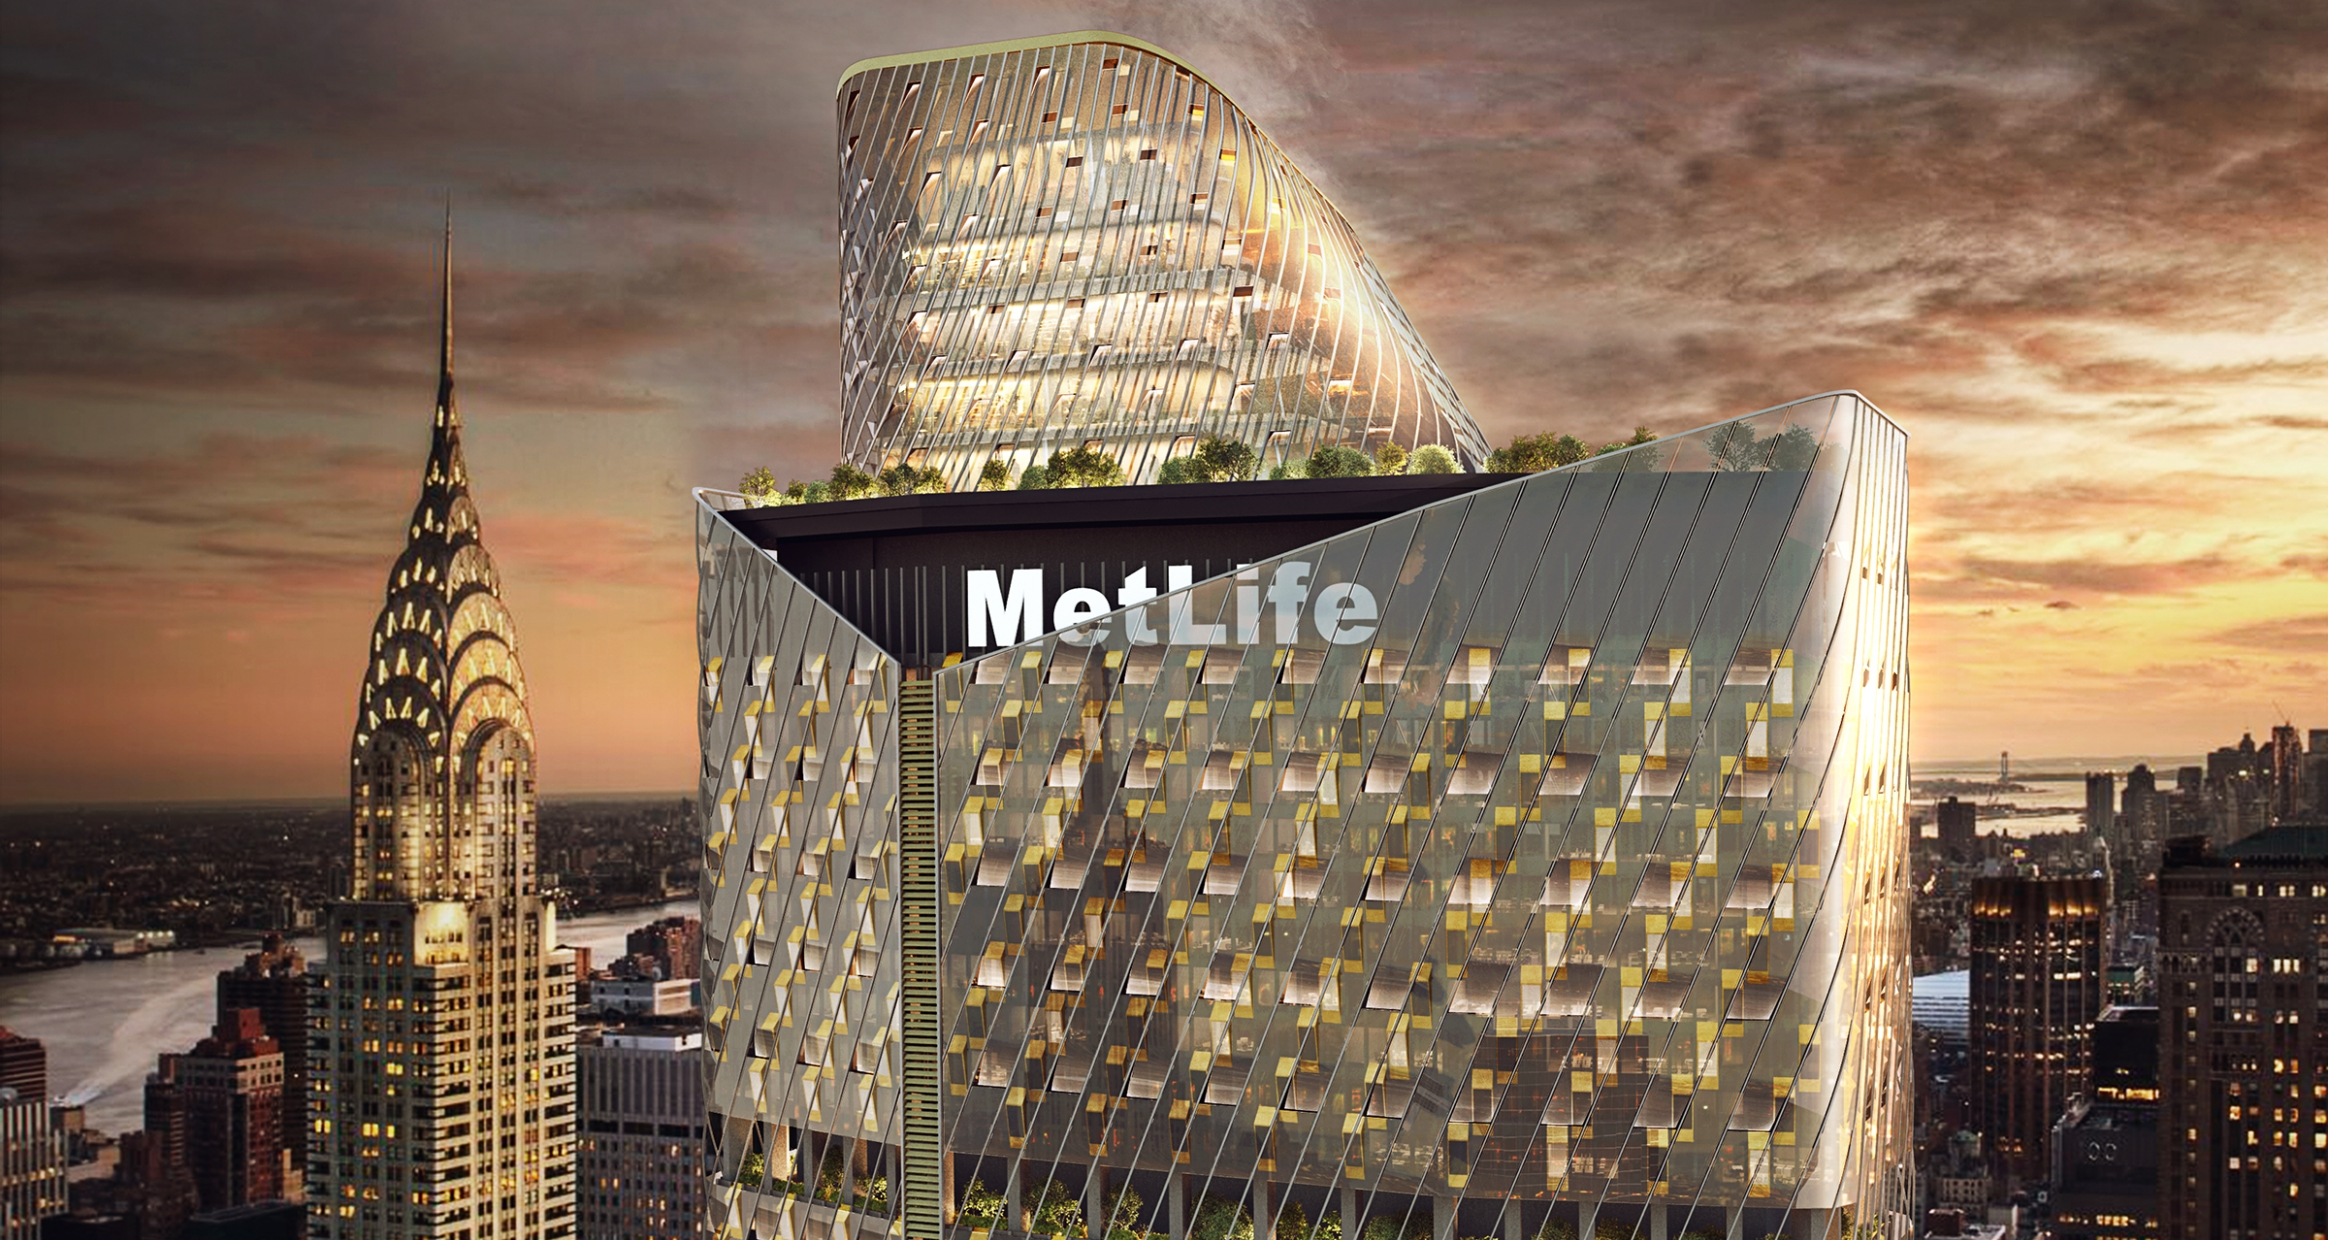 Exterior facade of MetLife Building